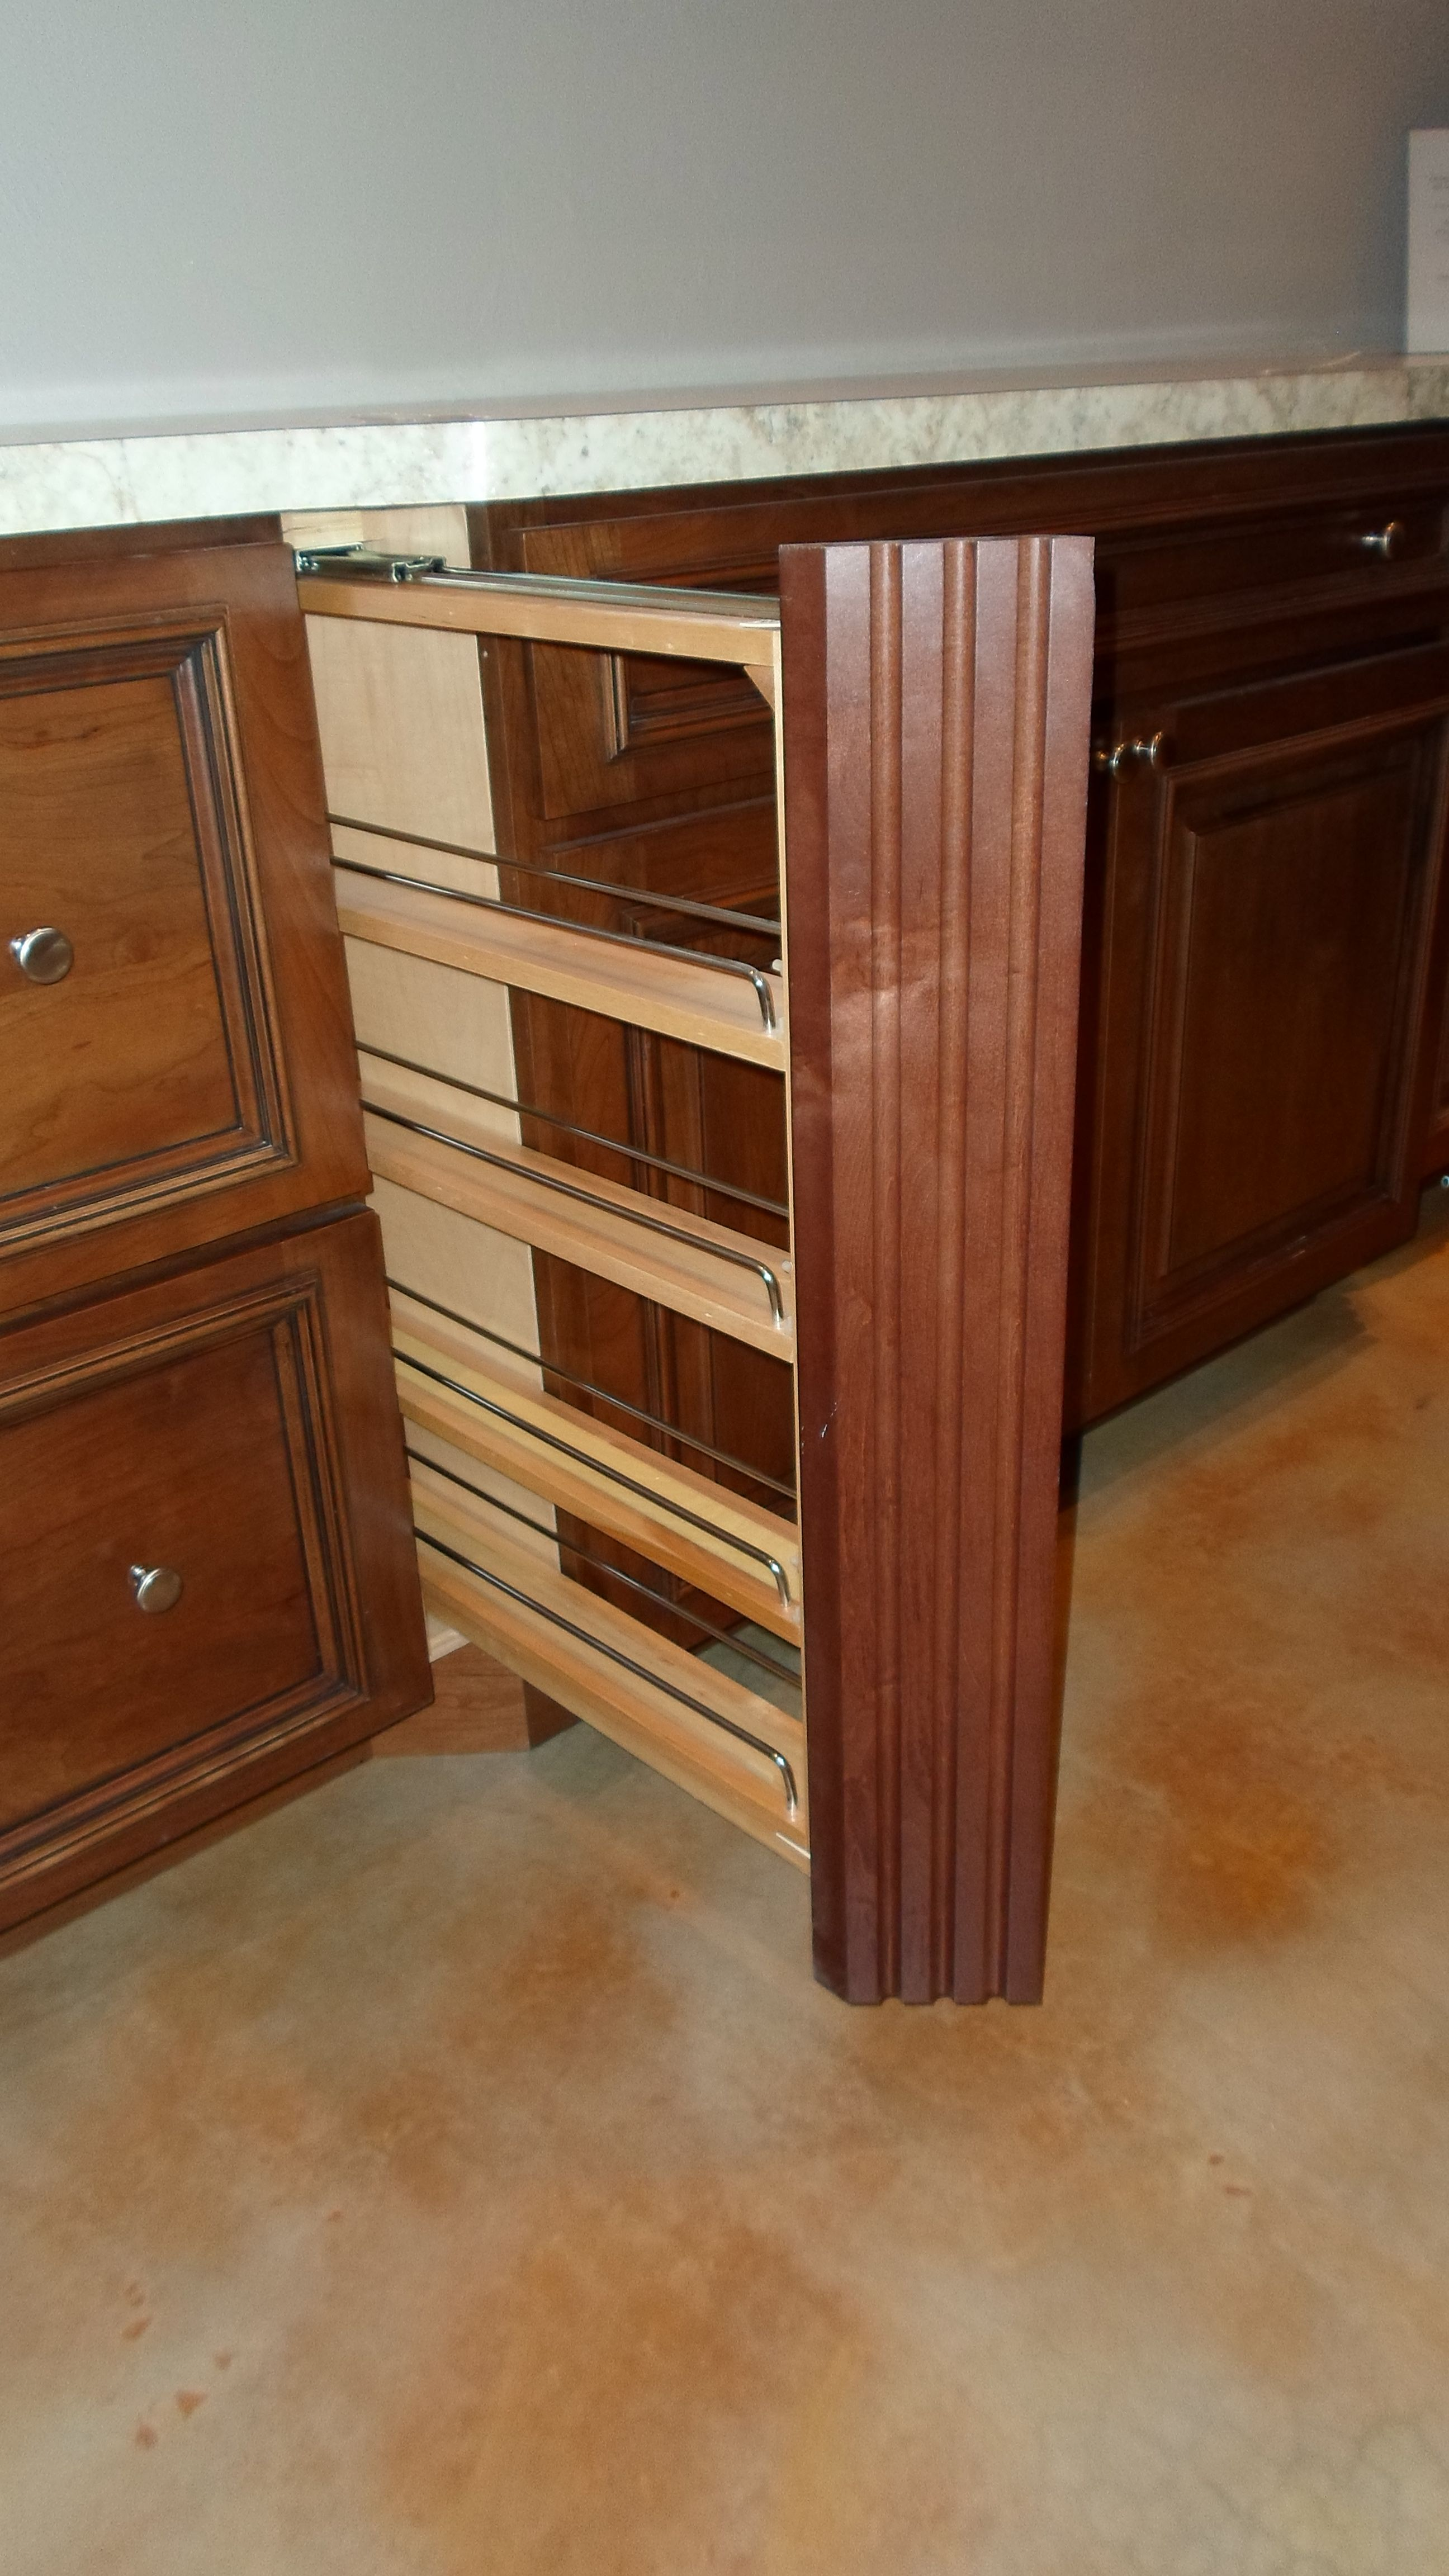 Karman Brand Cherry Cabinets Albany Door Style With 5 Piece Drawer Front And Spice Stain With Black Glaze Cherry Cabinets Cabinet Kitchen